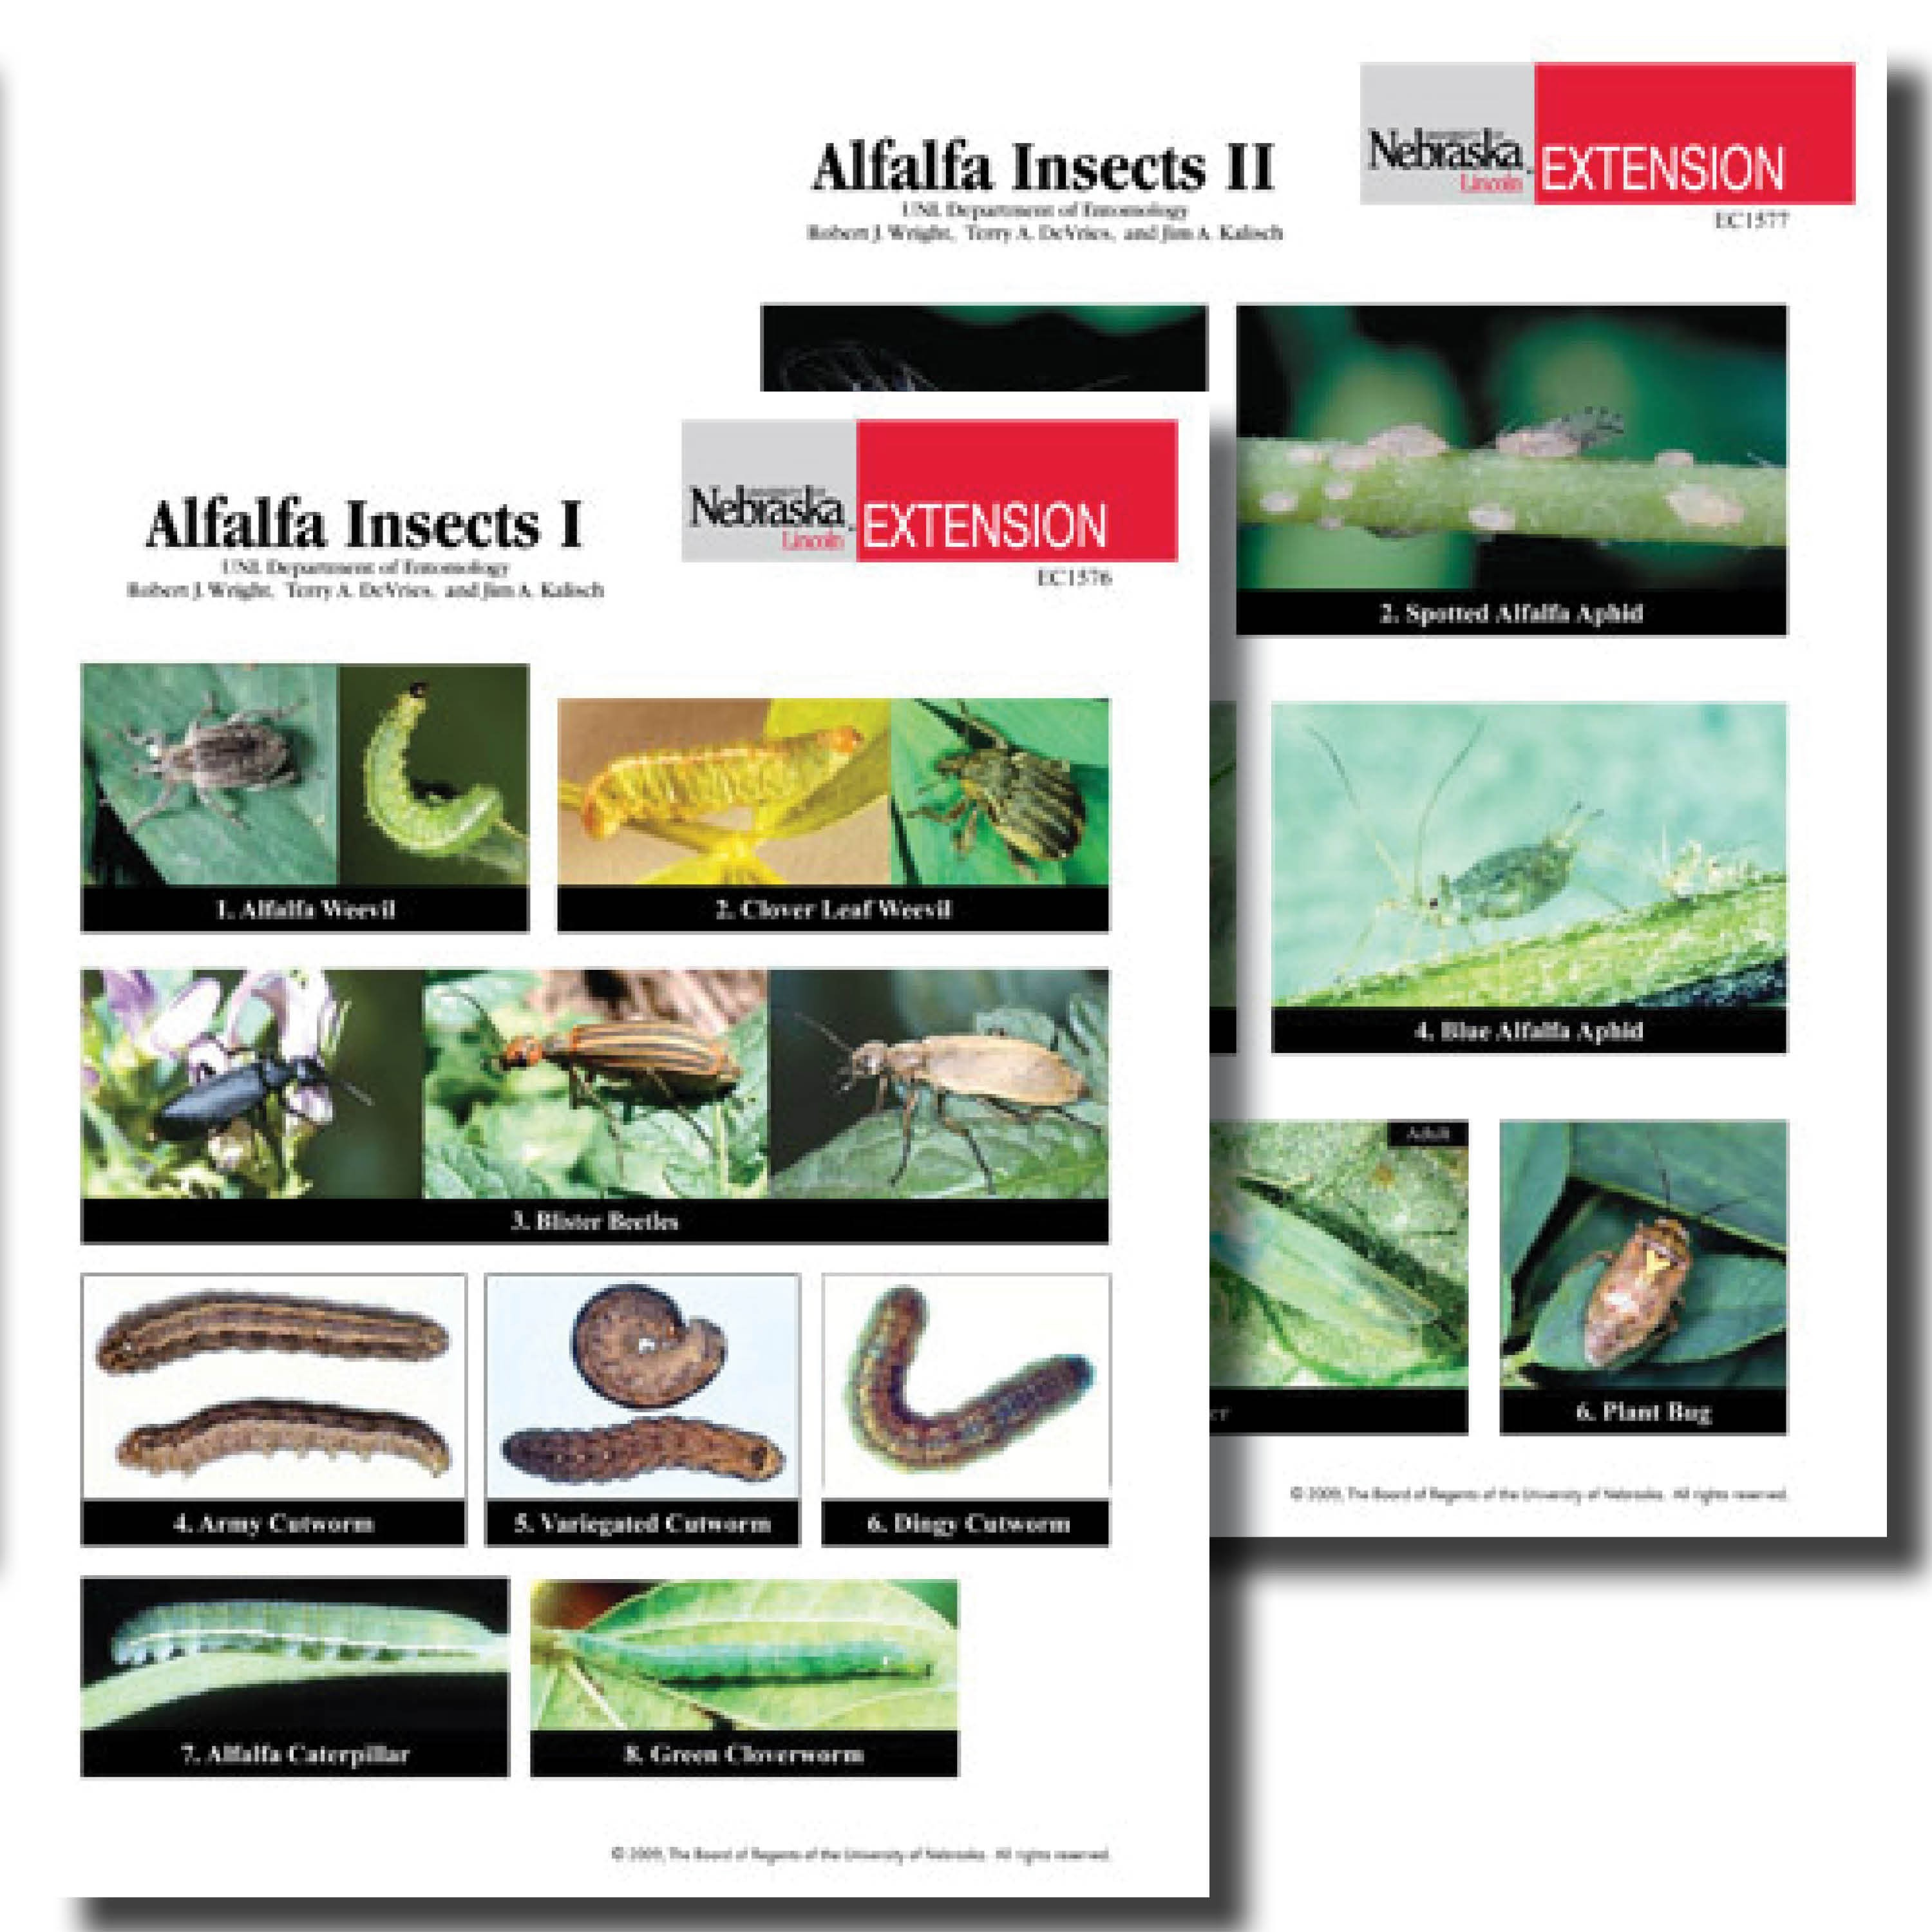 Alfalfa Insects Photo Identification Guides